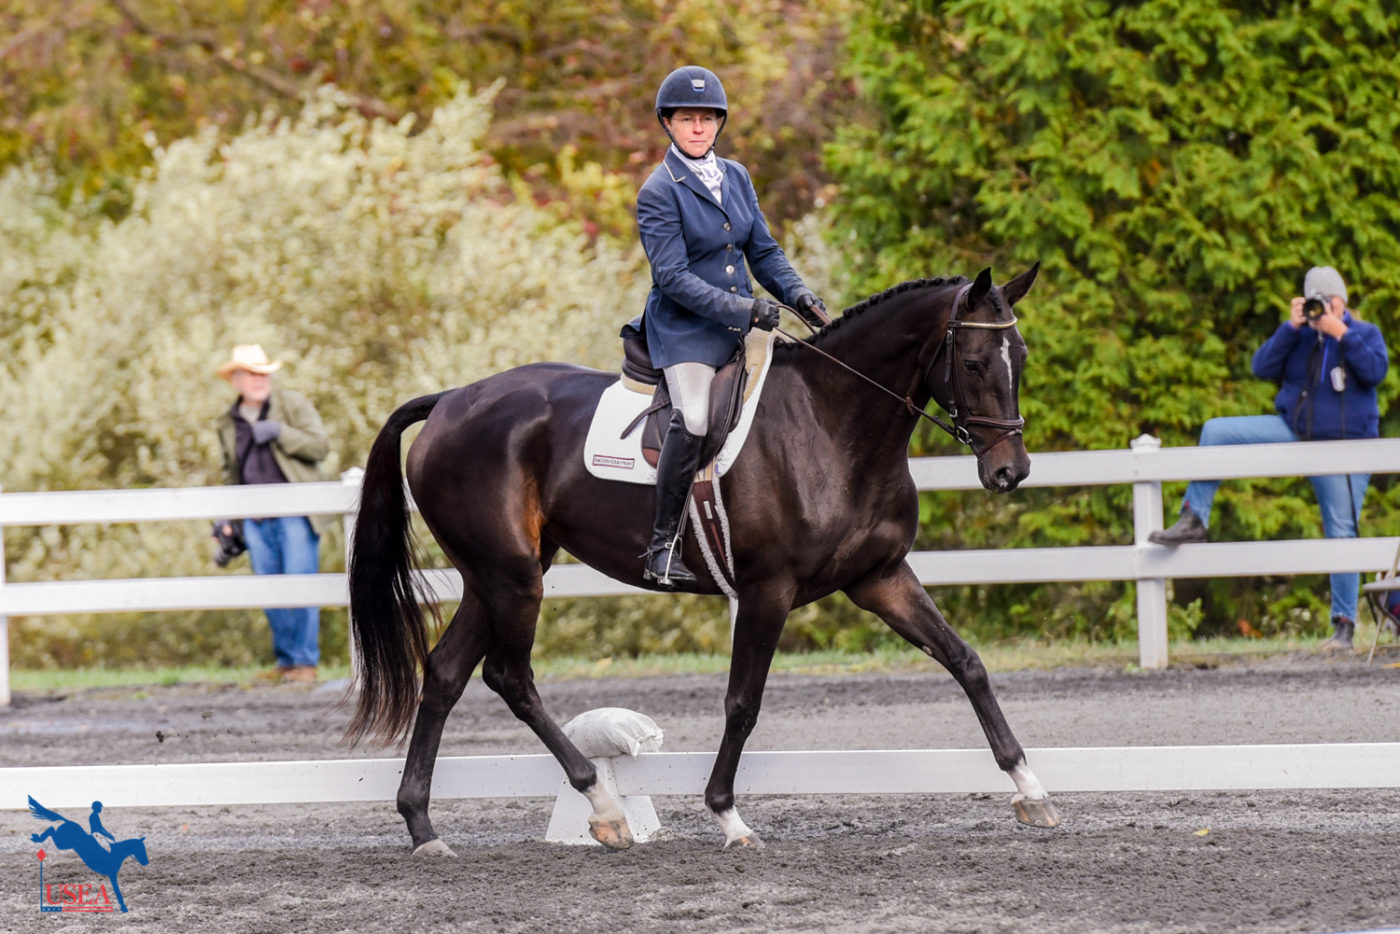 4yo - 5th - Courtney Cooper and Hunting Stars